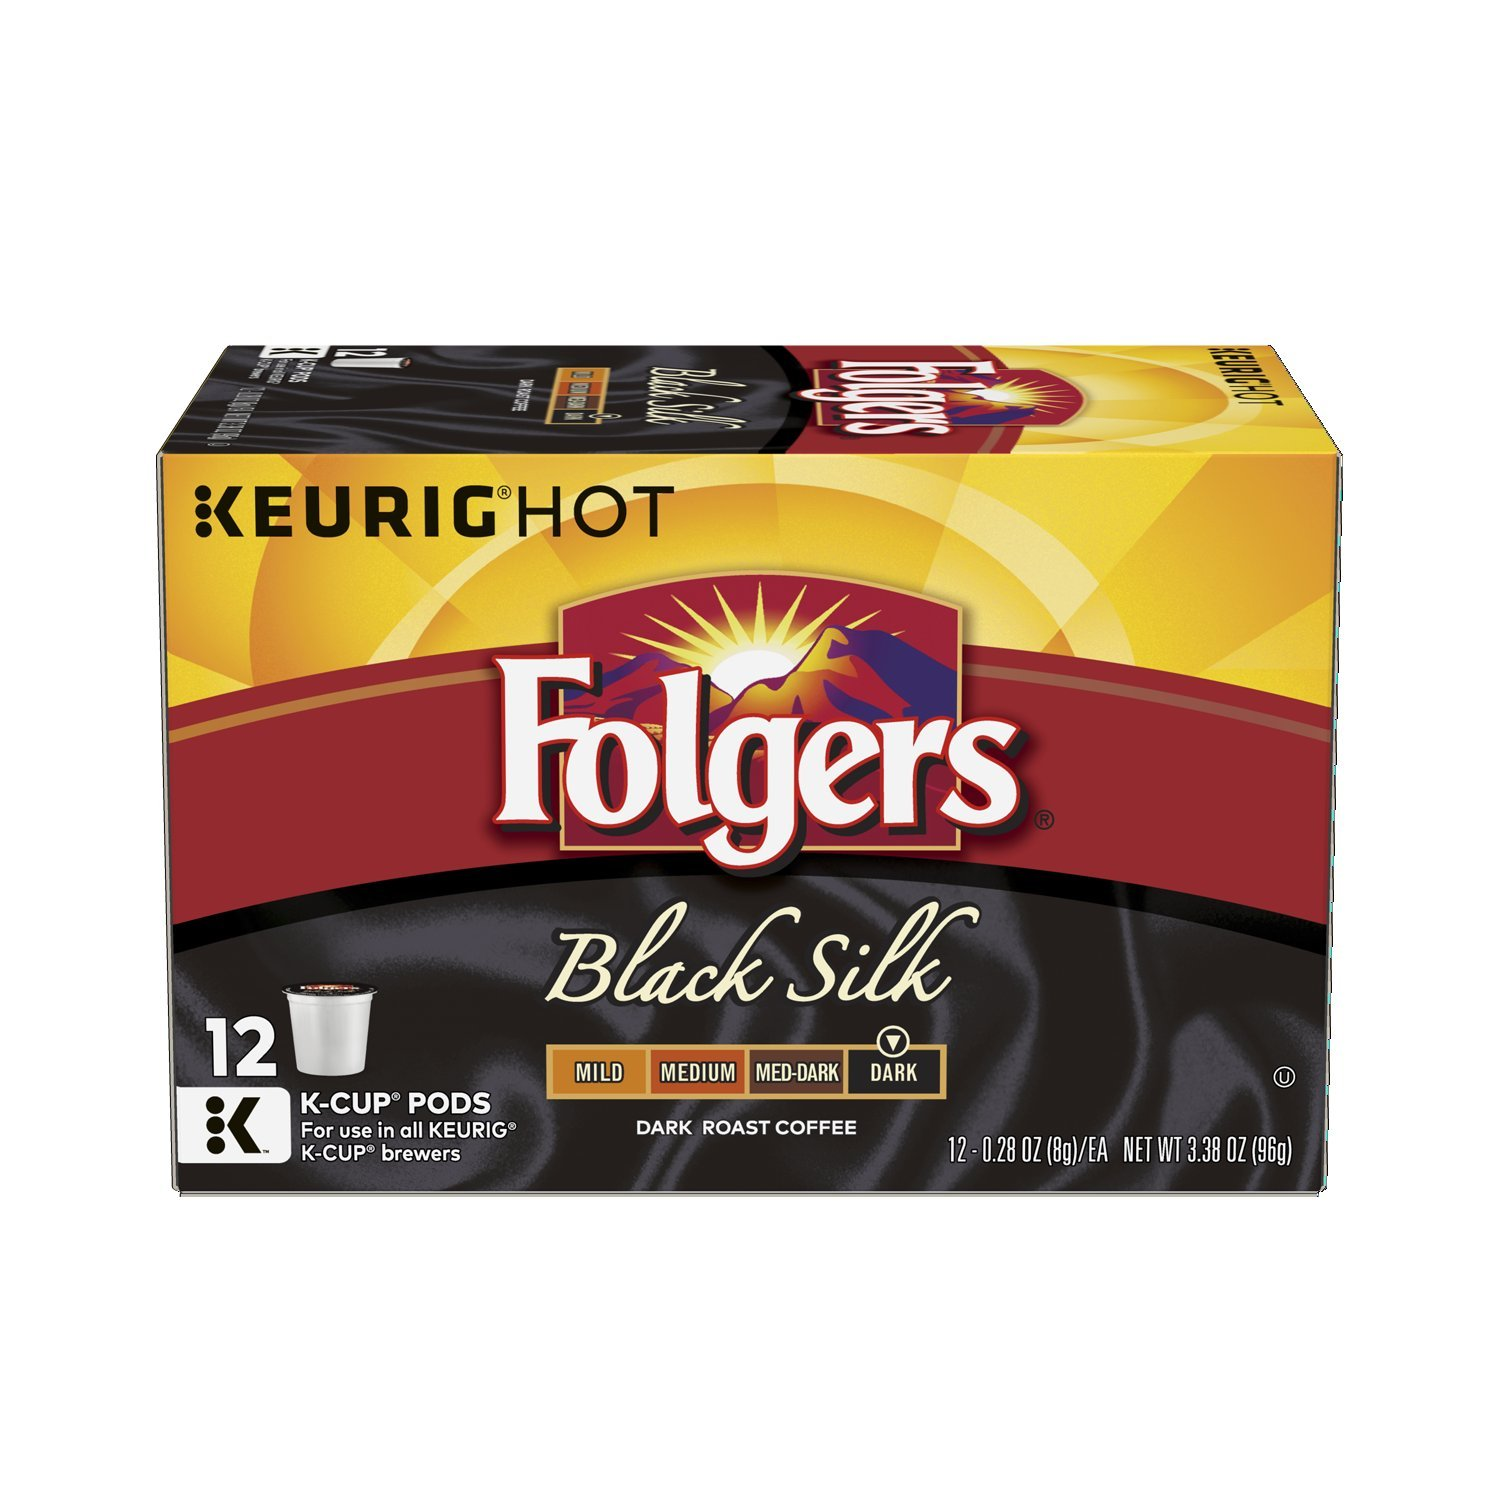 Folgers Black Silk Coffee, Dark Roast, K-Cup Pods for Keurig K-Cup Brewers, 12-Count (Pack of 6) by Folgers (Image #2)